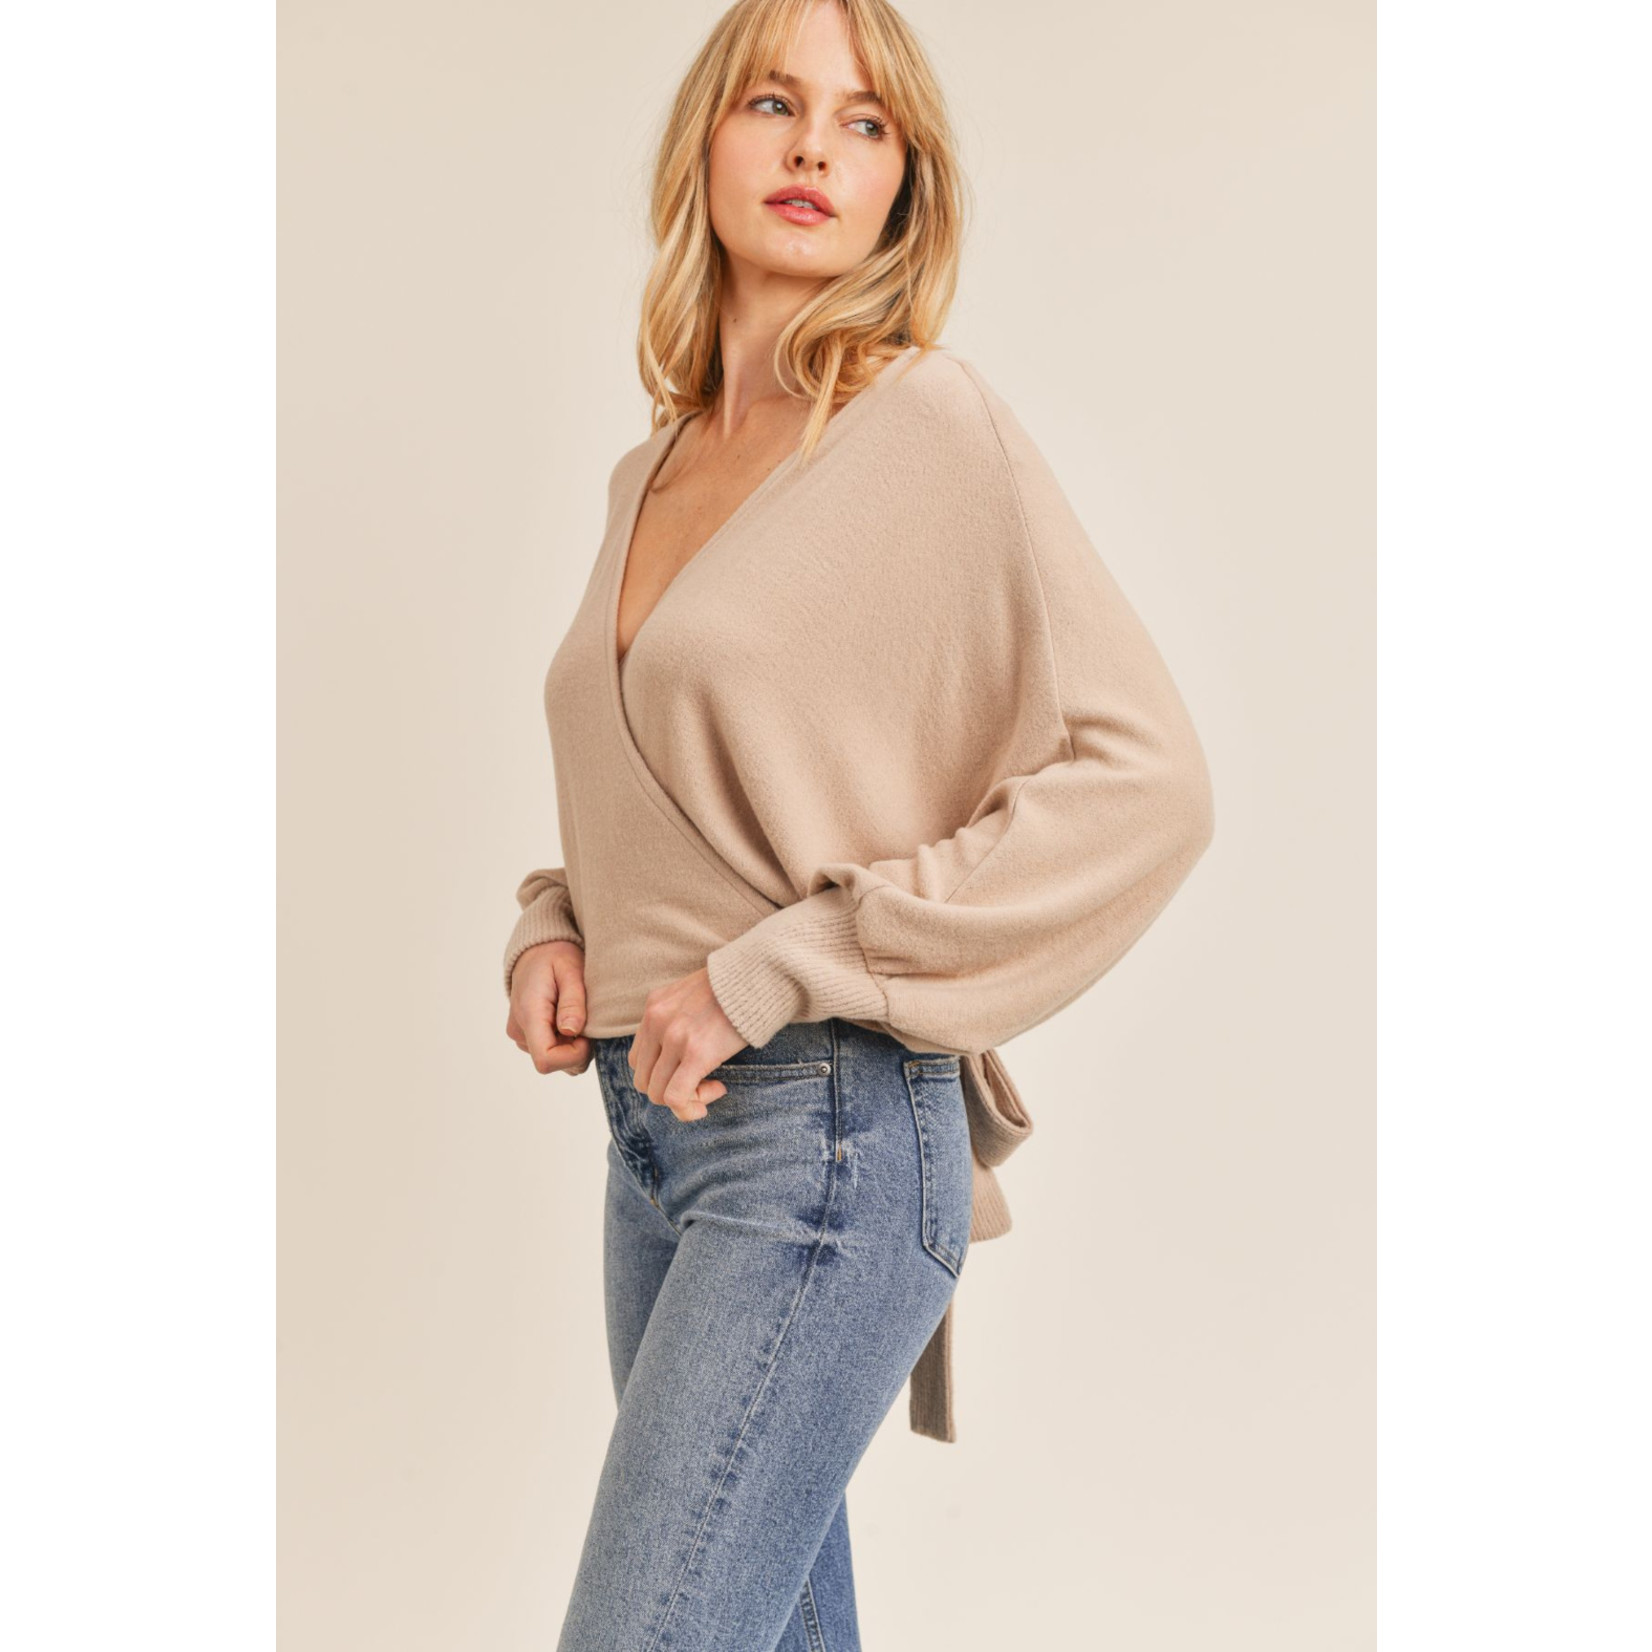 SADIE & SAGE HERE FOR YOU WRAP TOP